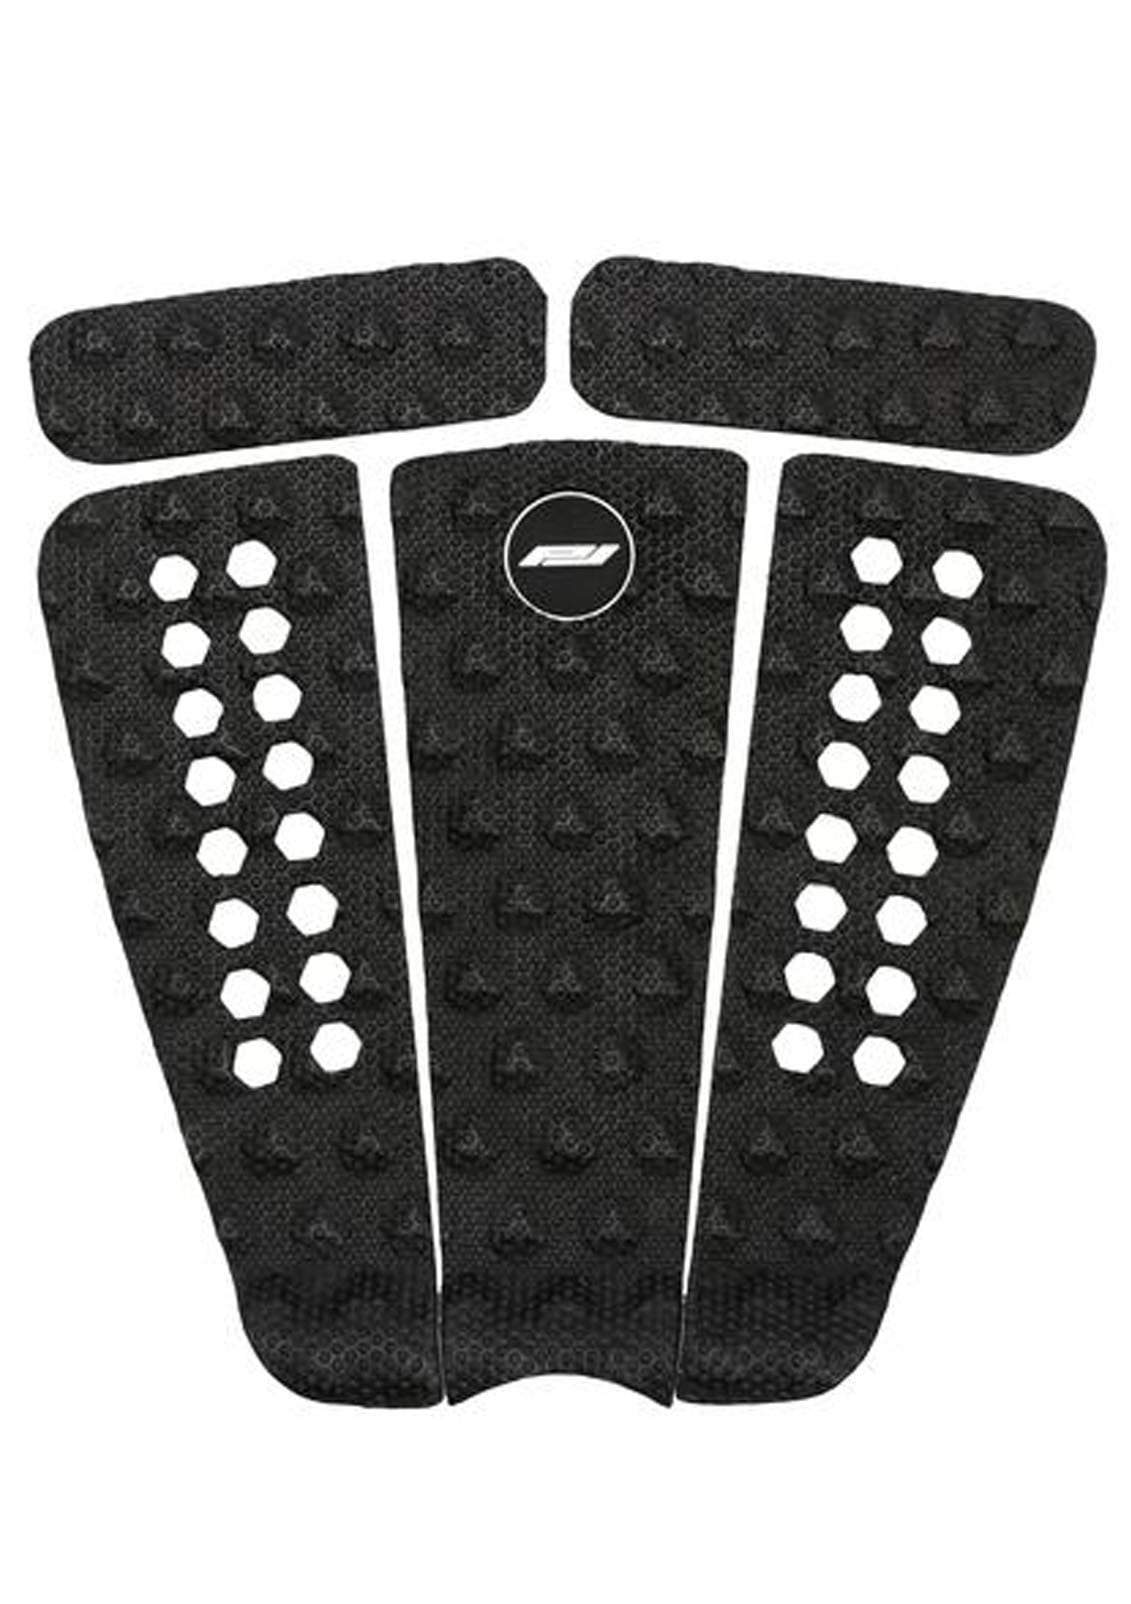 Pro-Lite Basic Five Surf Traction Pad